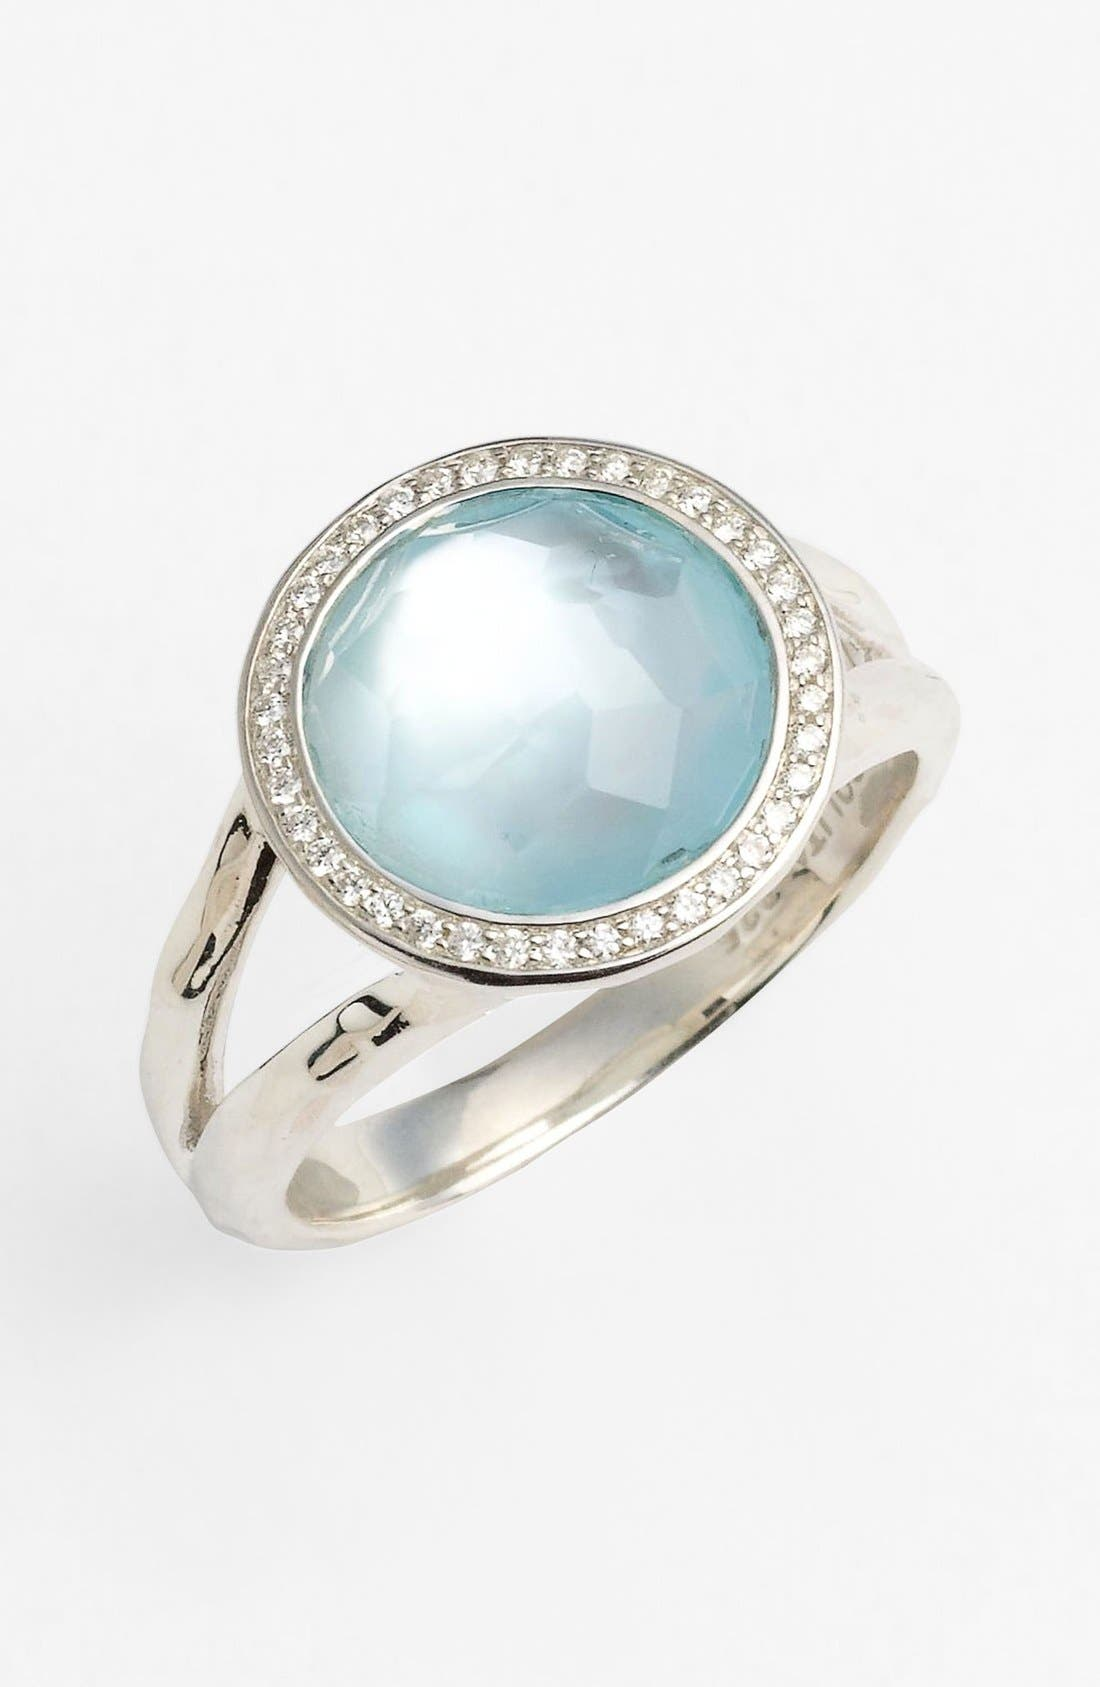 'Stella - Rock Candy' Cocktail Ring,                         Main,                         color, Silver/ Blue Topaz